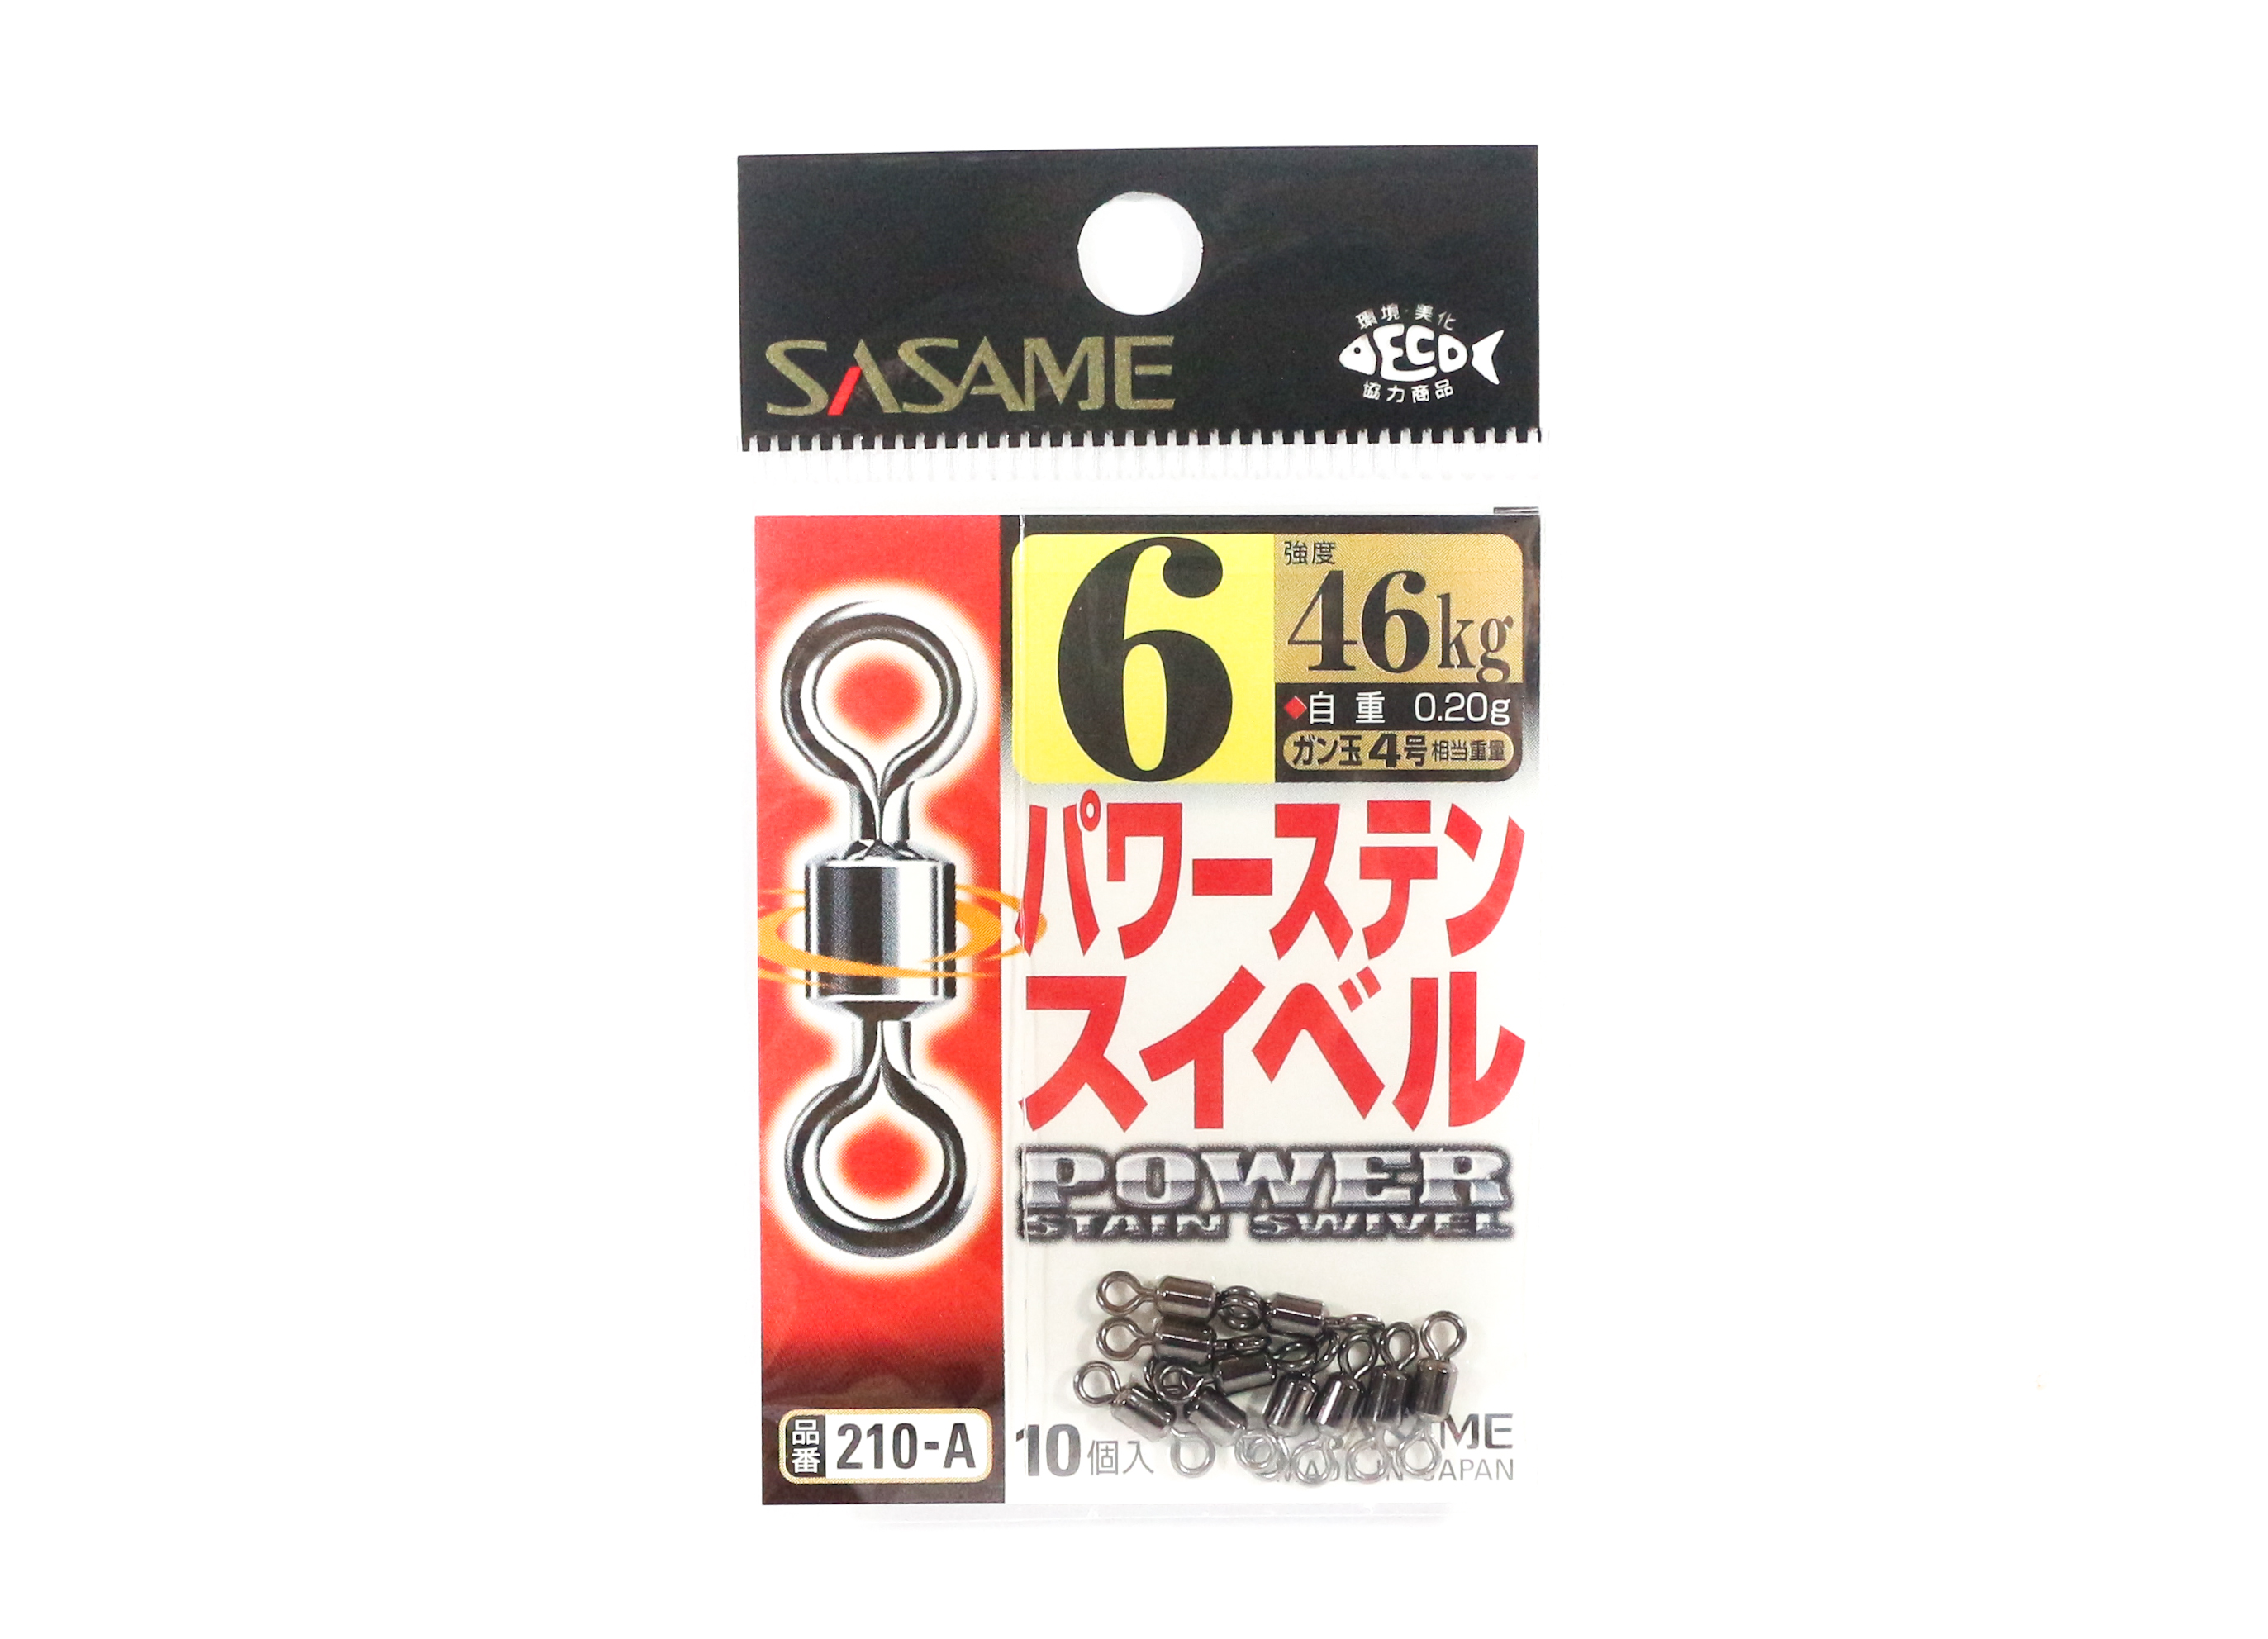 Sasame 210-A Power Stain Swivel Smooth Spin Black Size 6 (0846)